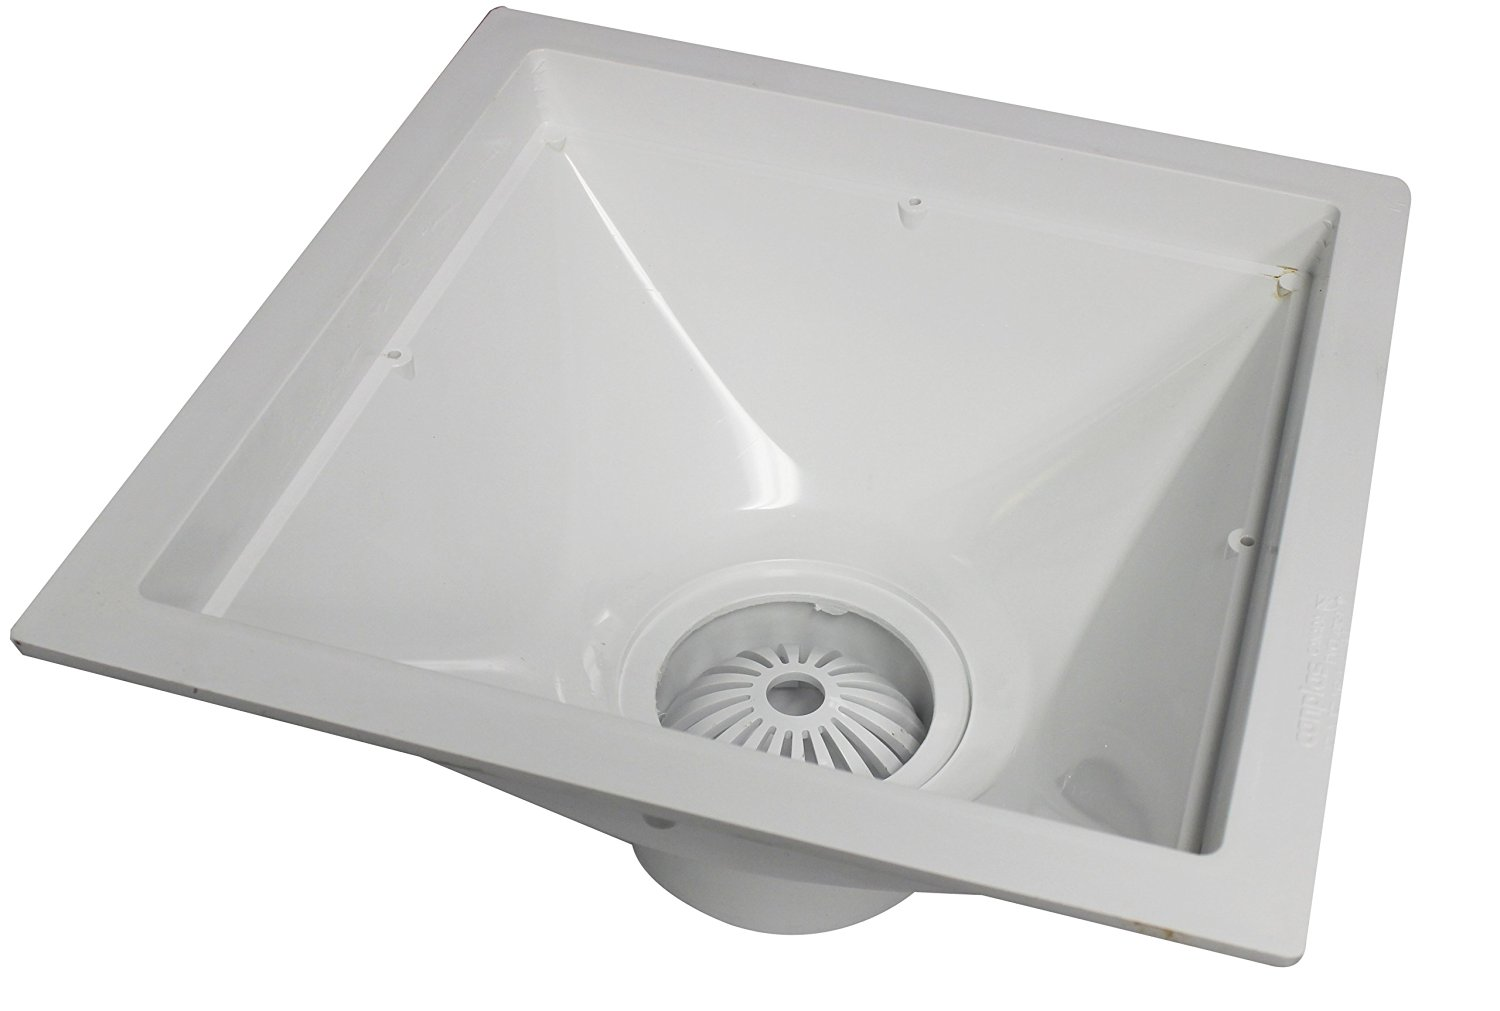 Endura 394713 12-Inch by 12-Inch by 6-Inch PVC Floor Sink for Standard Floor with 4-Inch Hub